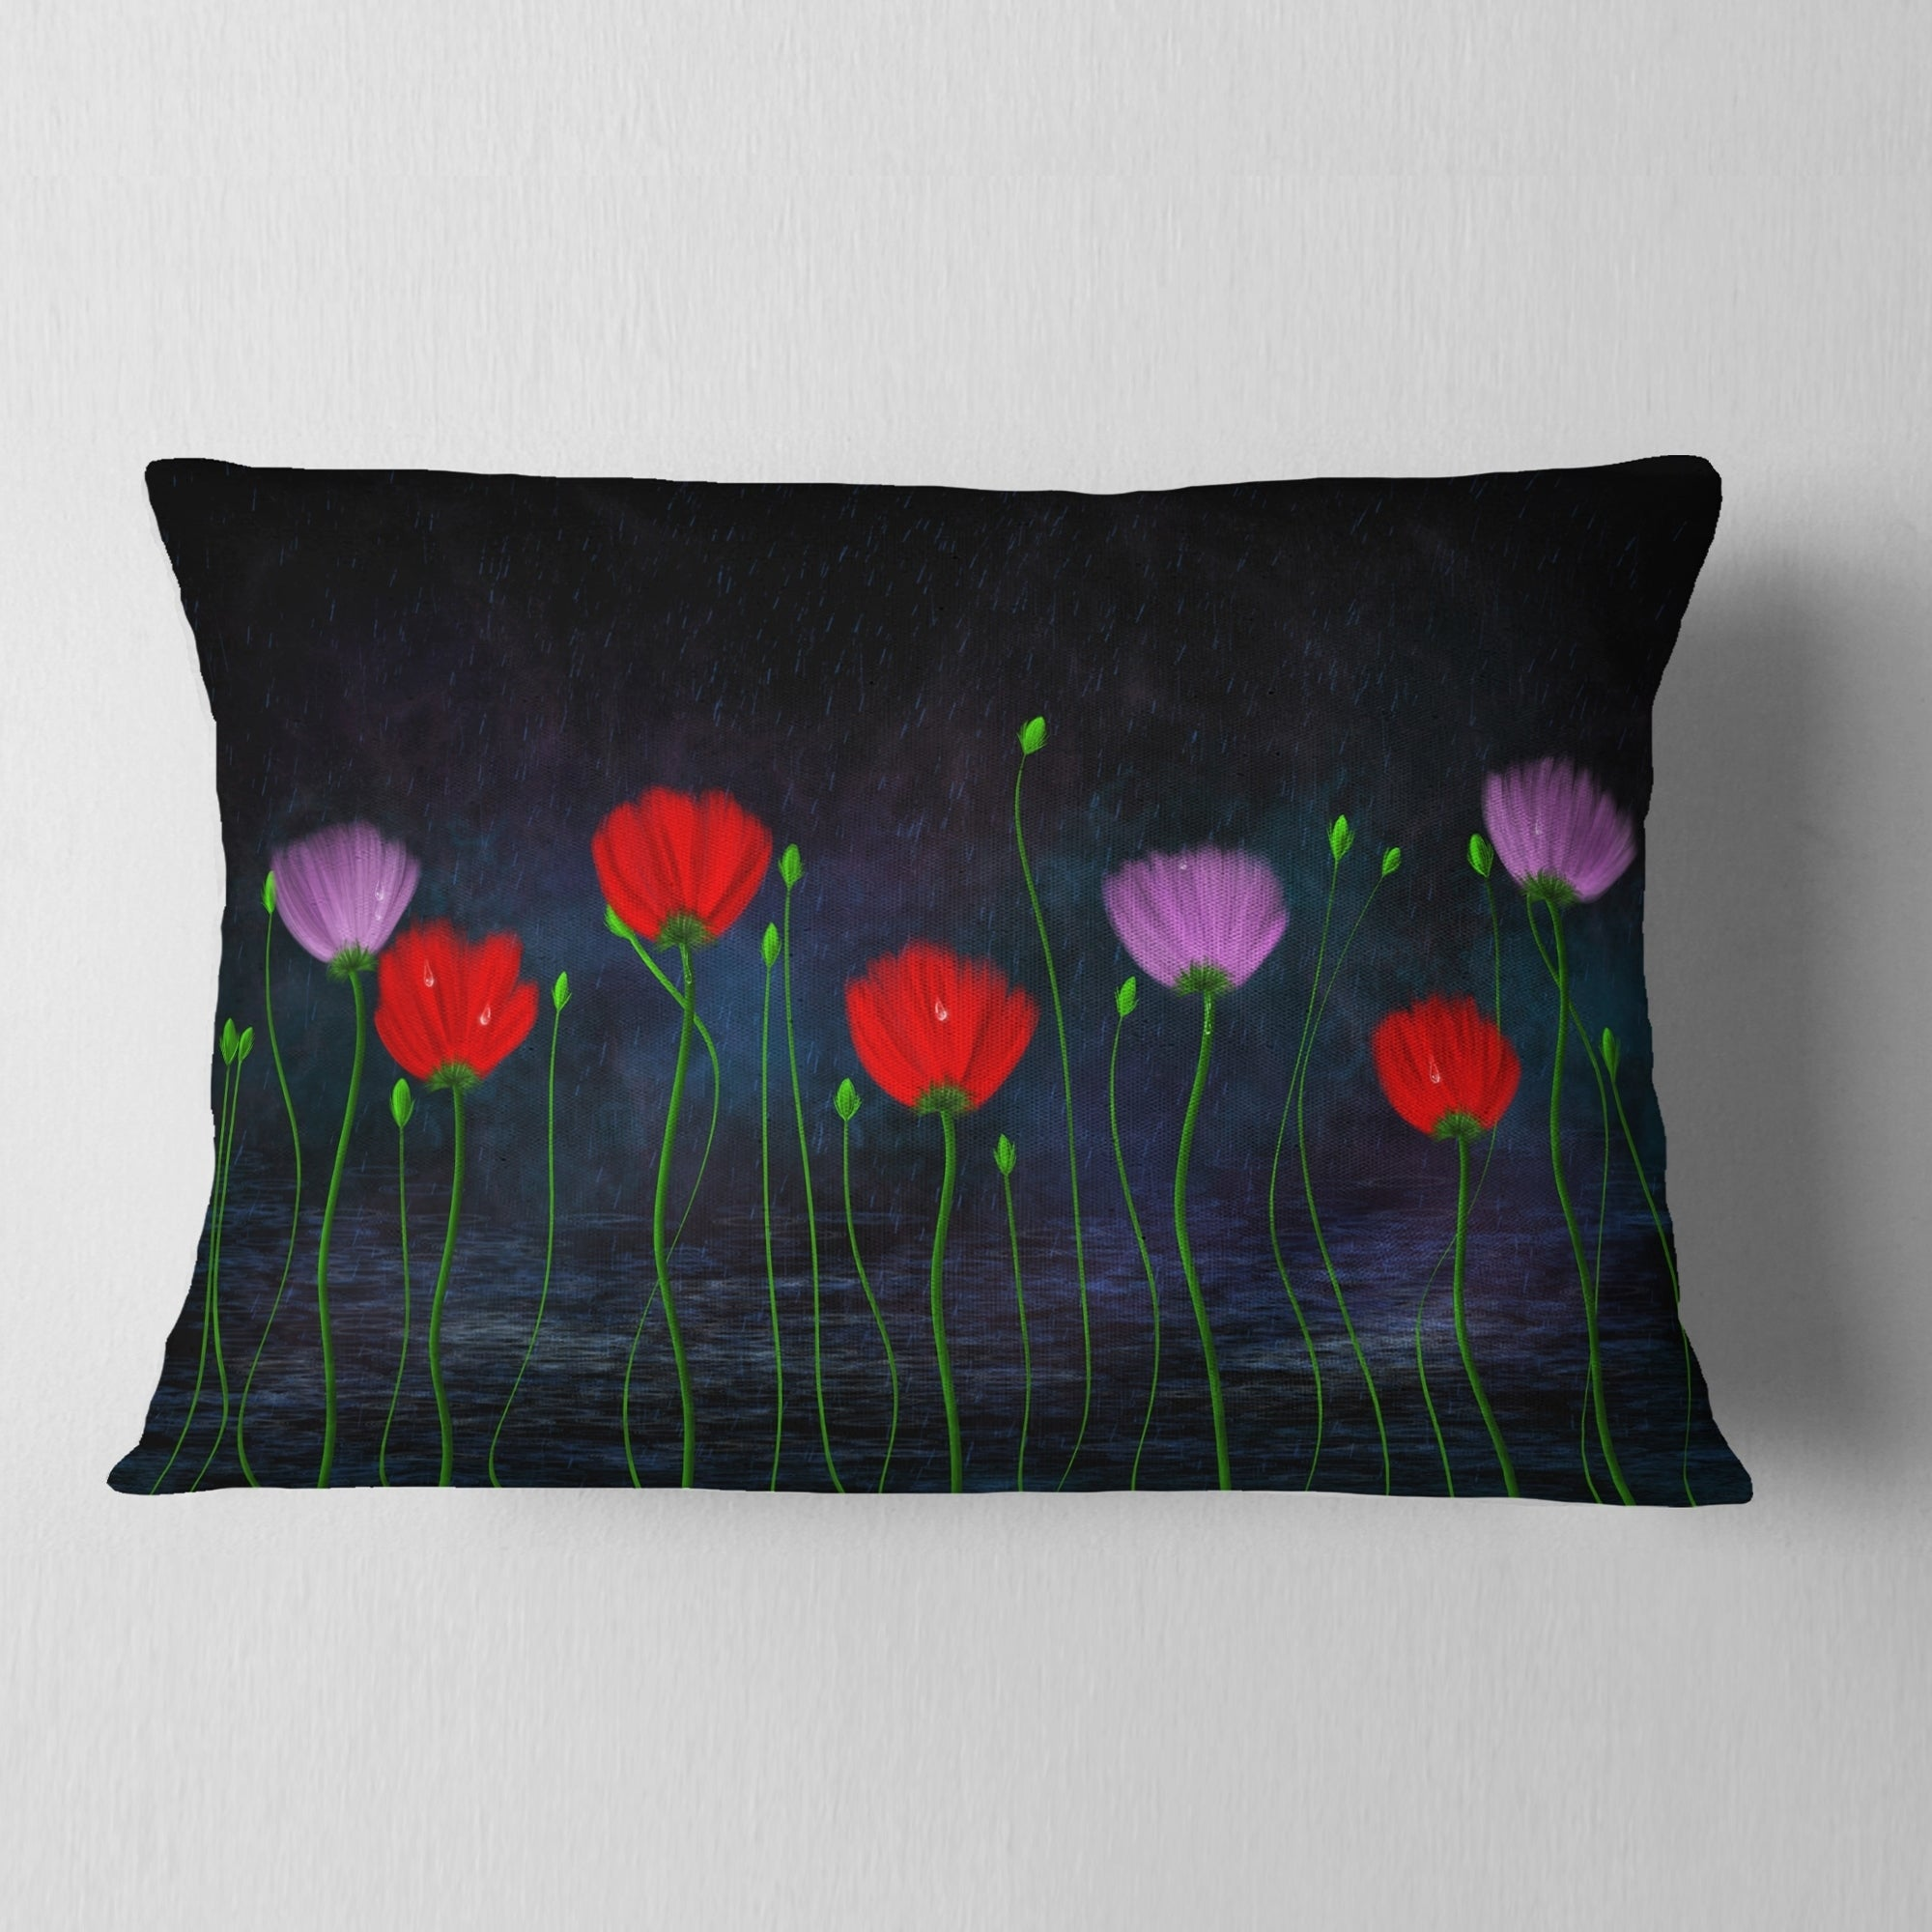 Designart Rain And Flowers With Buds And Drops Floral Throw Pillow Overstock 20949317